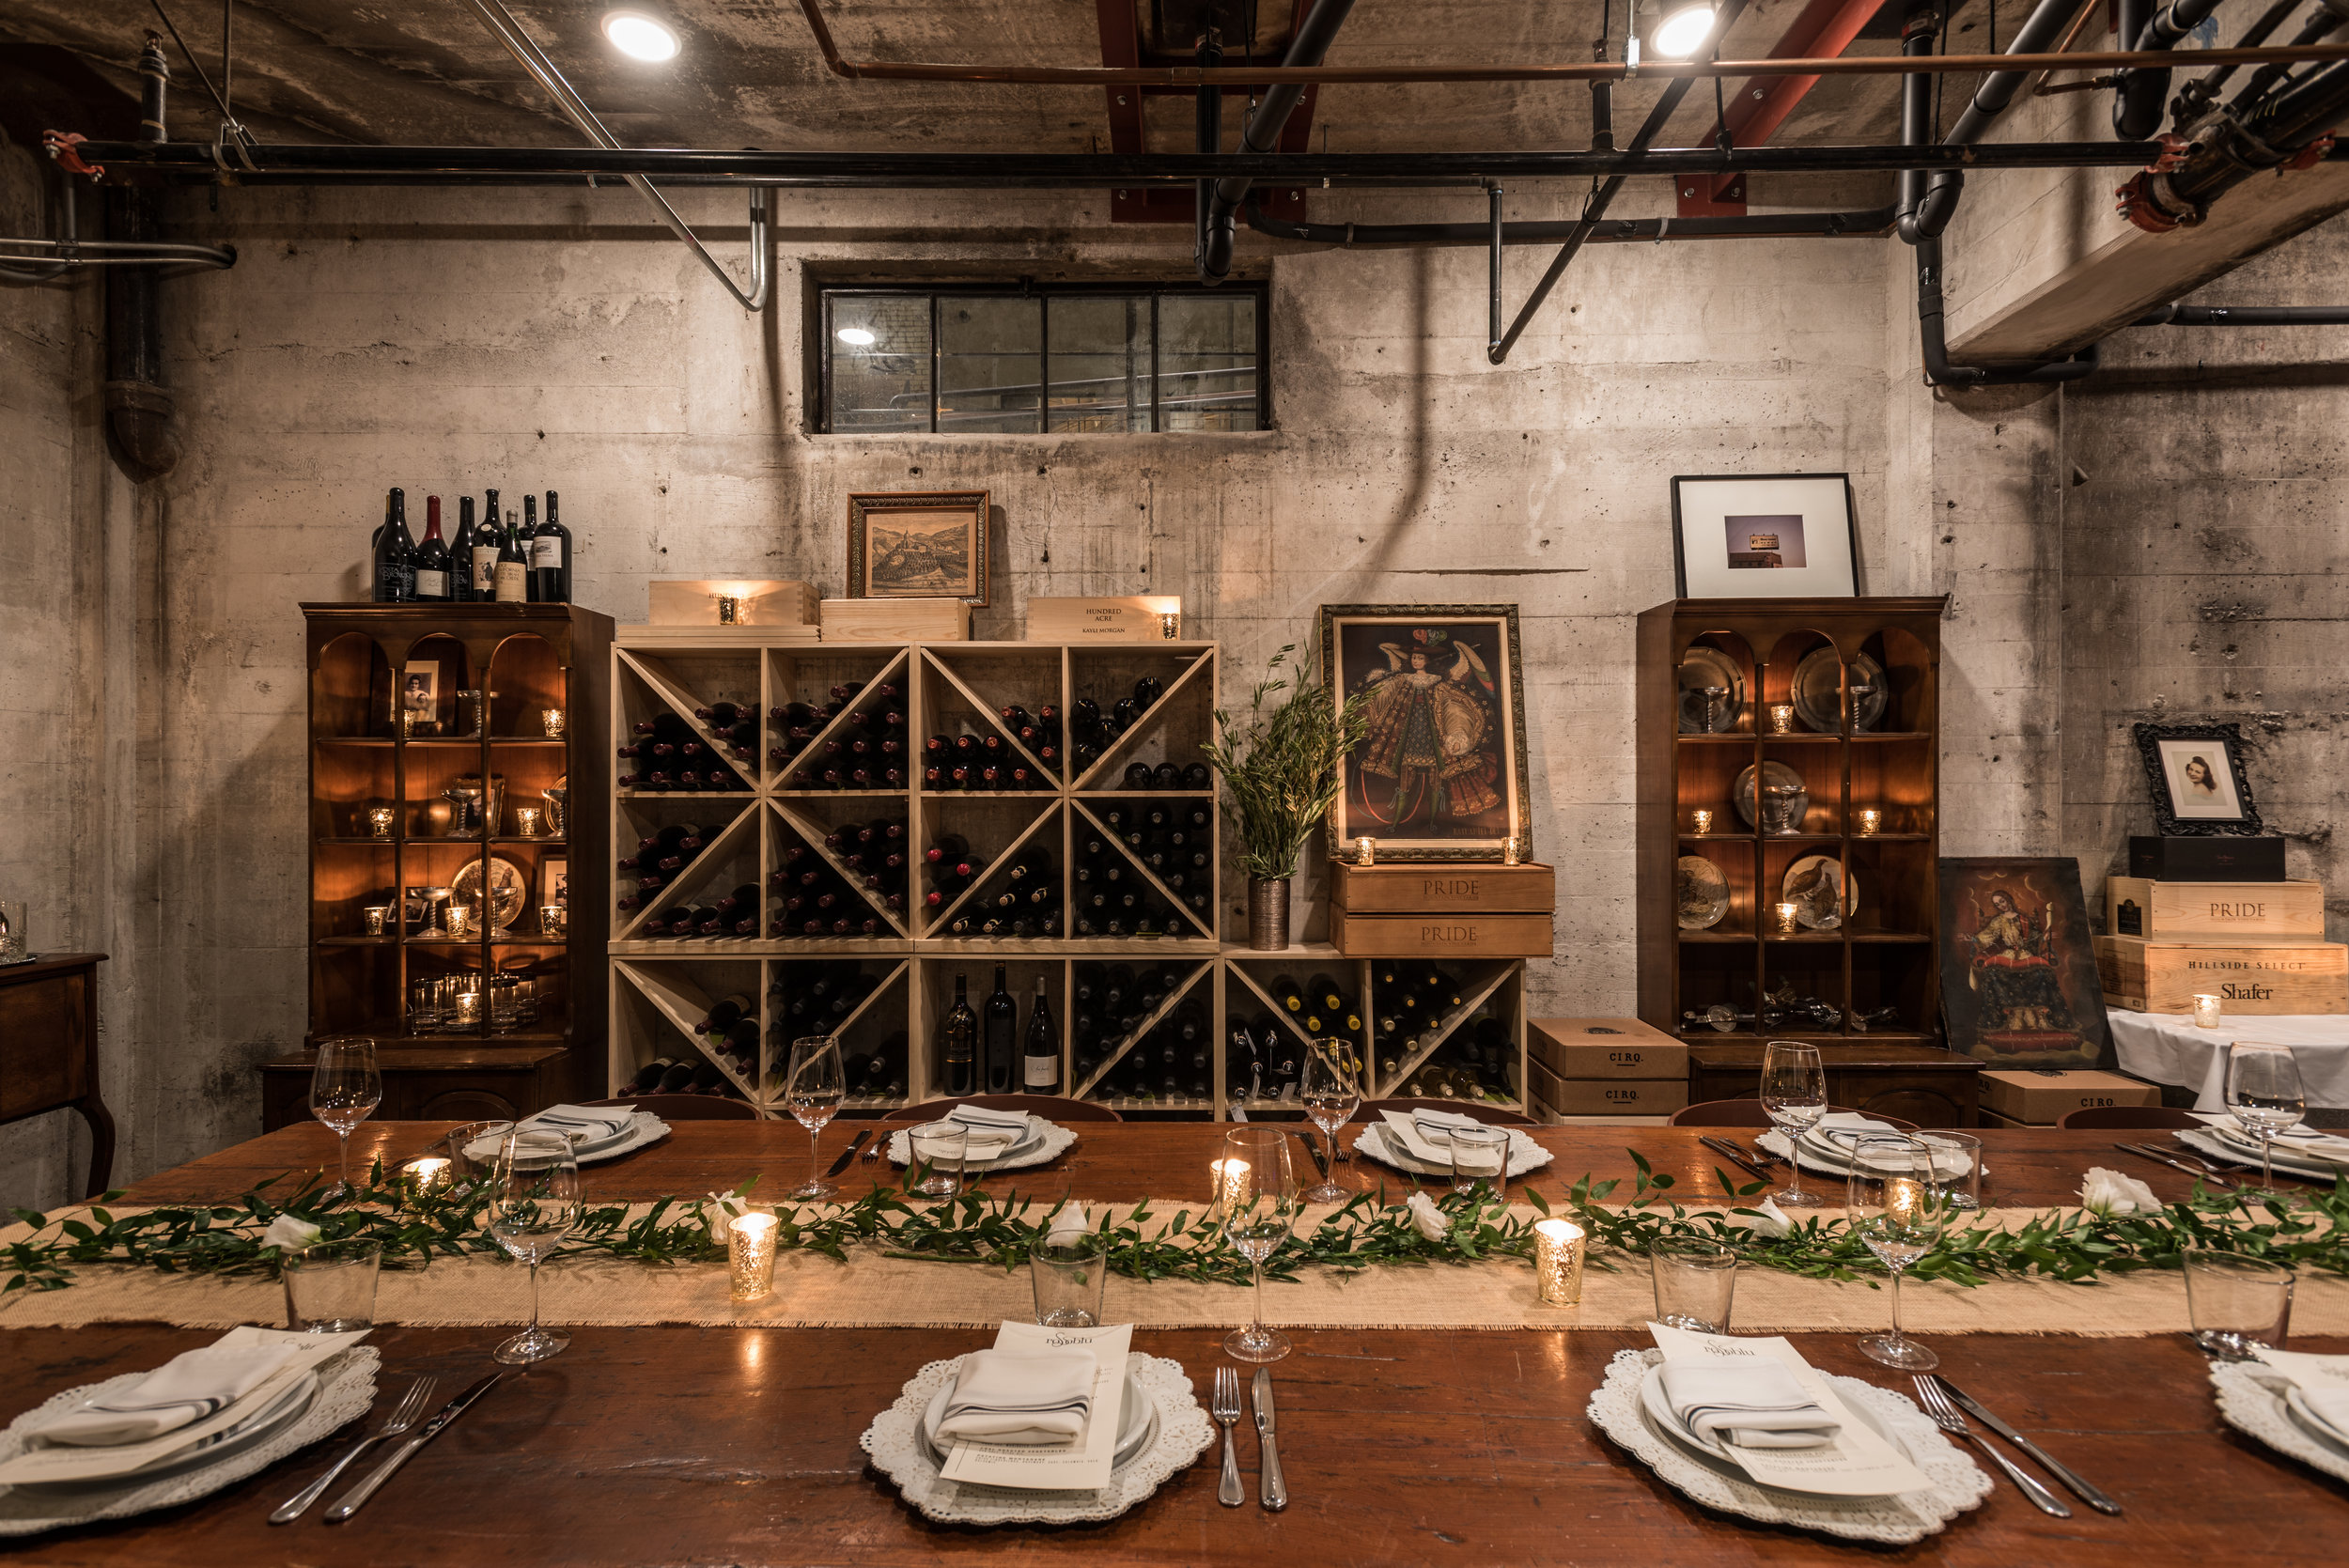 CHEF'S CELLAR (PRIVATE DINING)